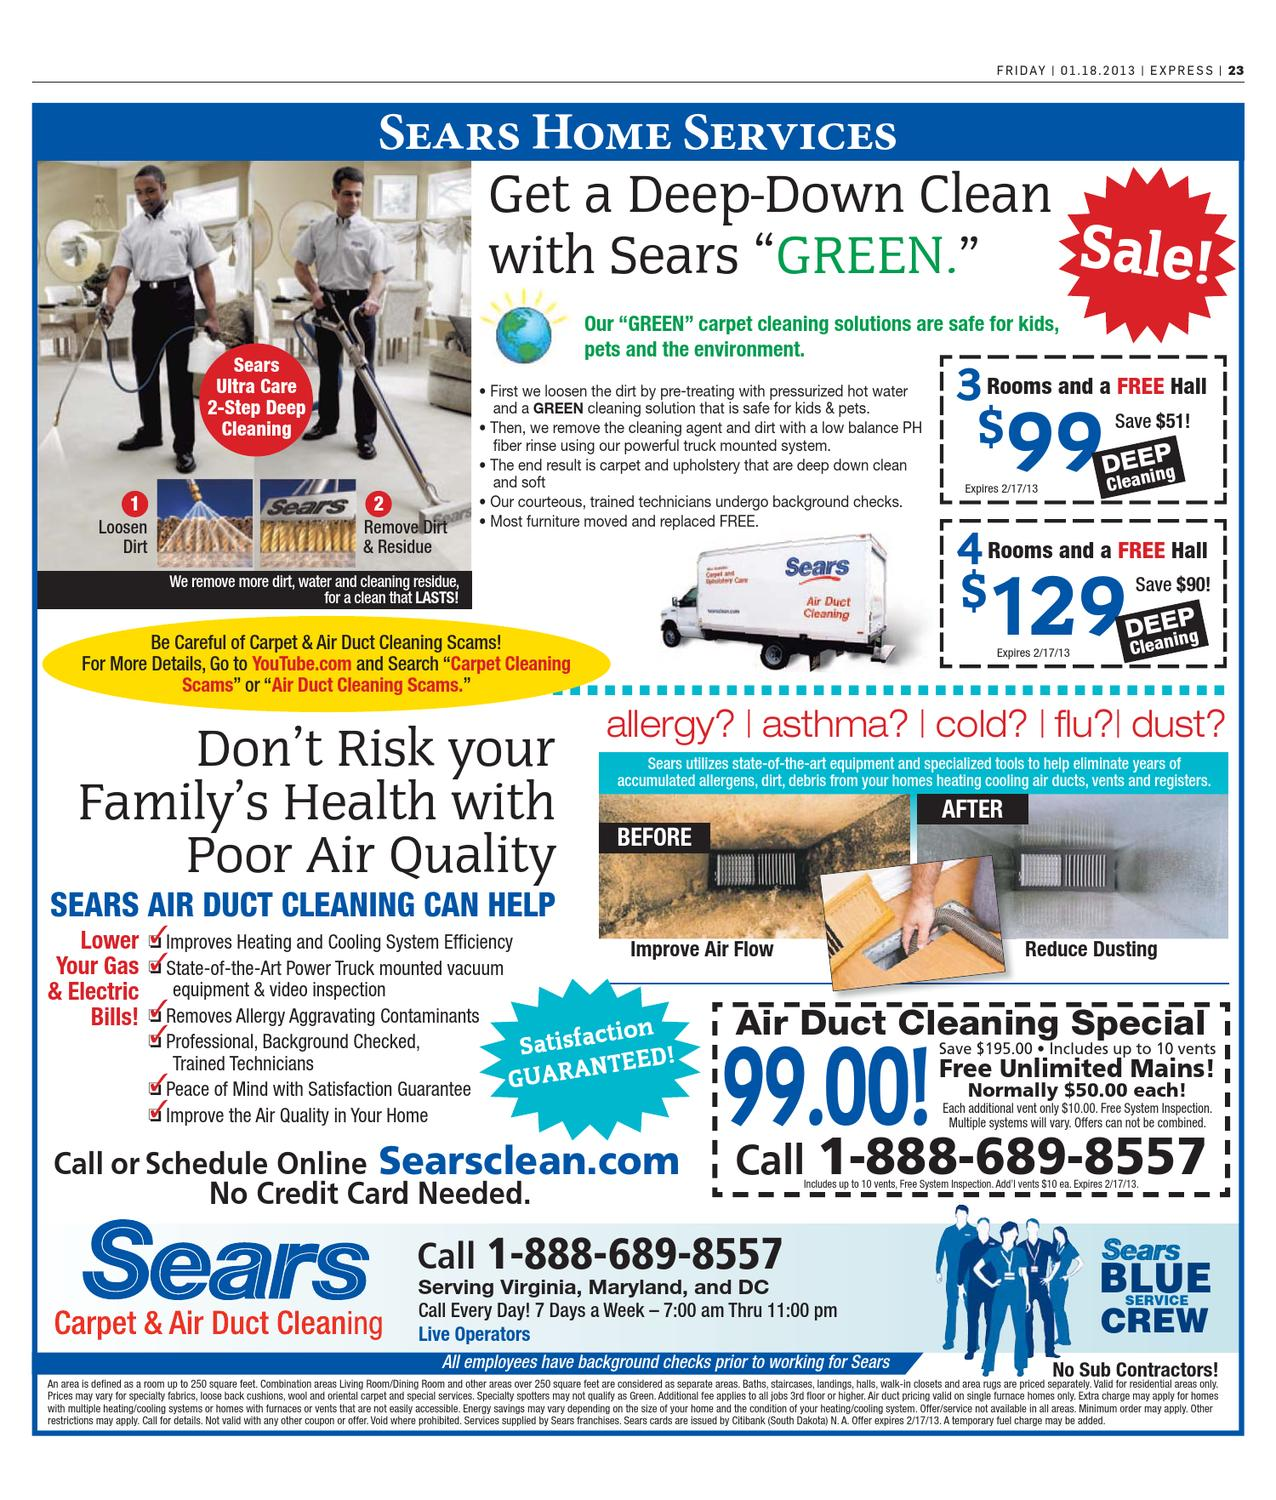 Sears Carpet Cleaning 99 Special Carpet Vidalondon